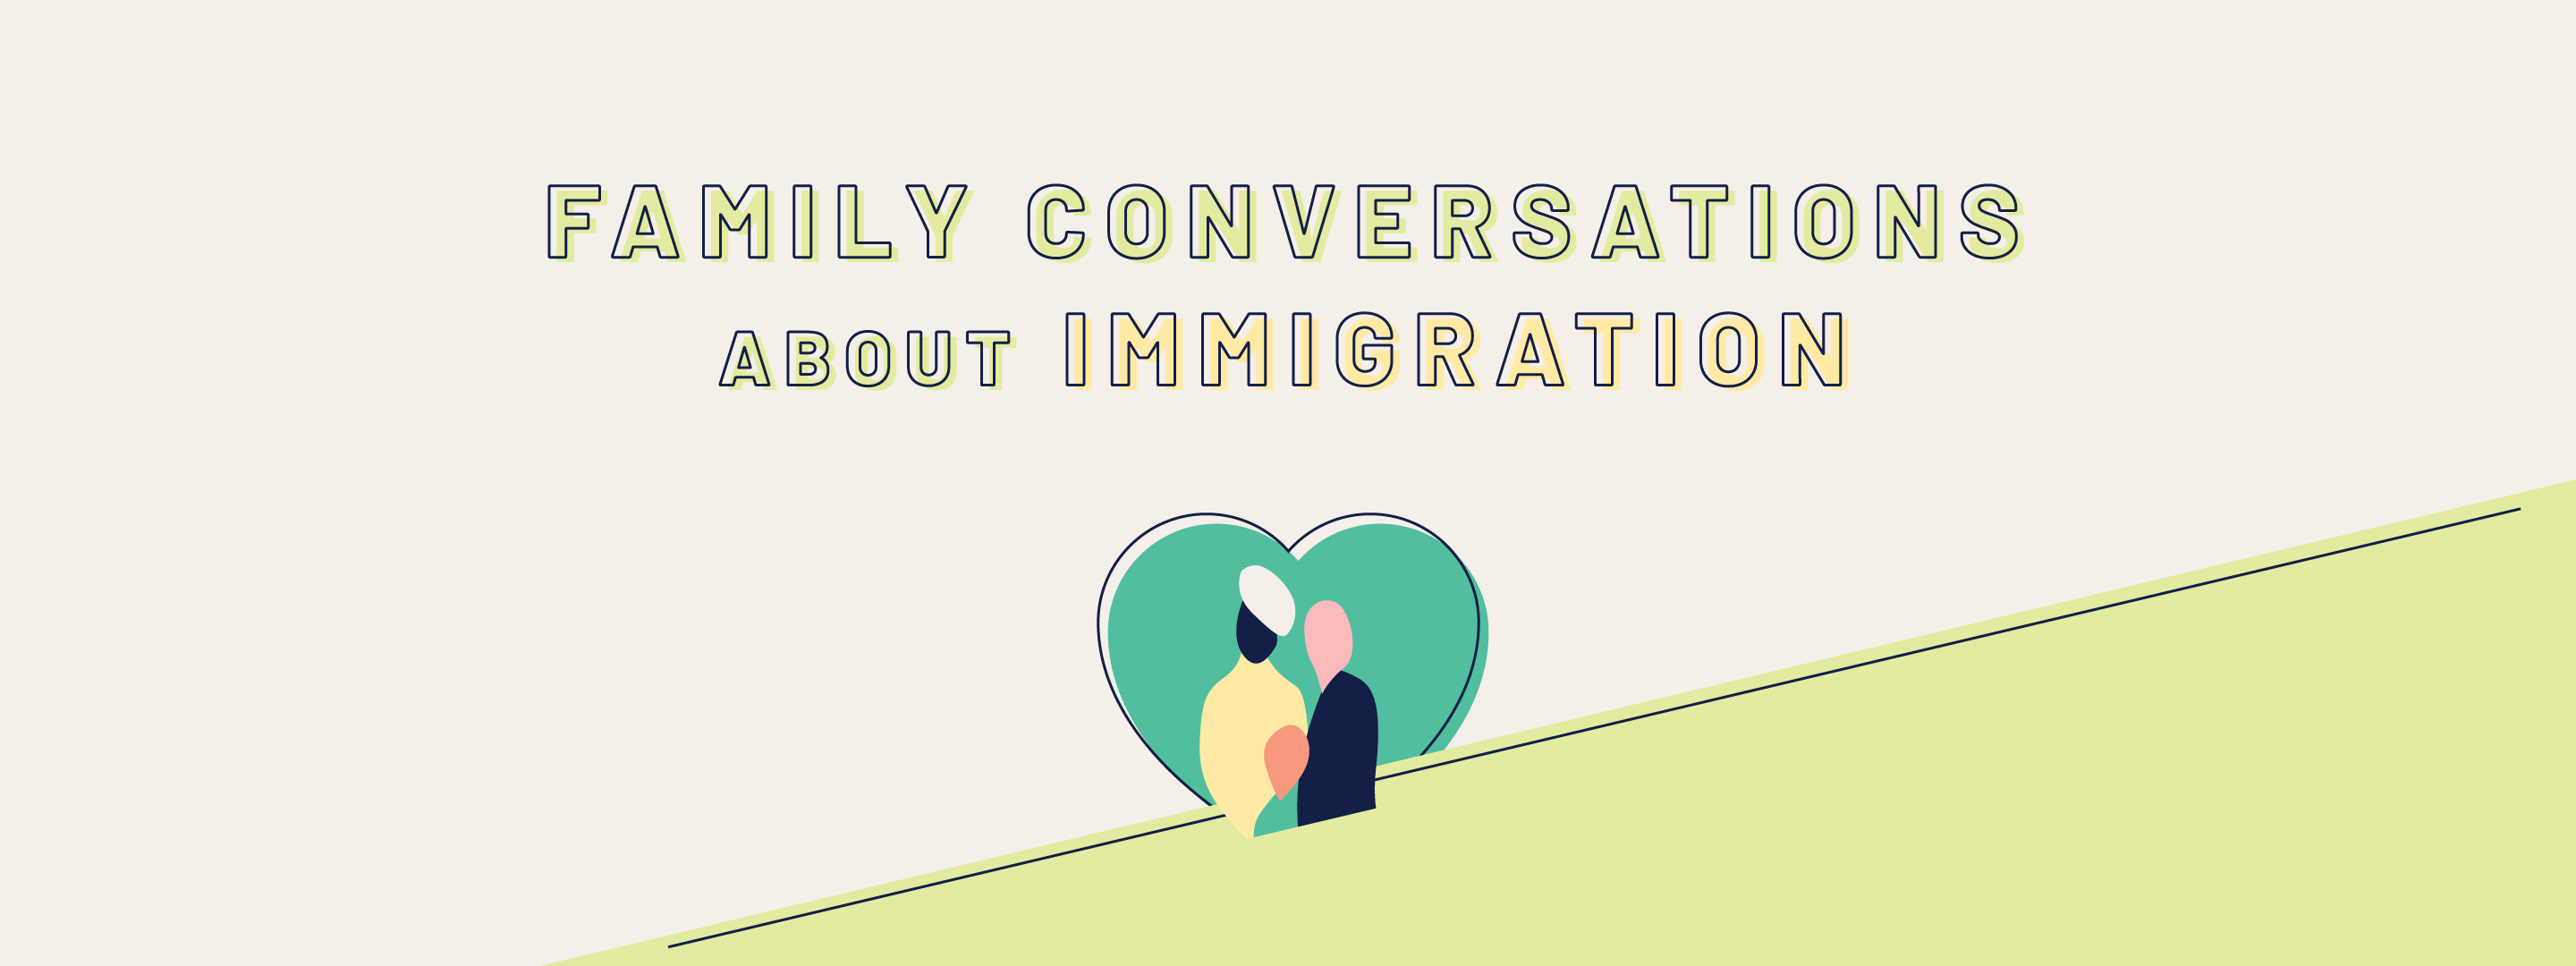 Family Conversations About Immigration